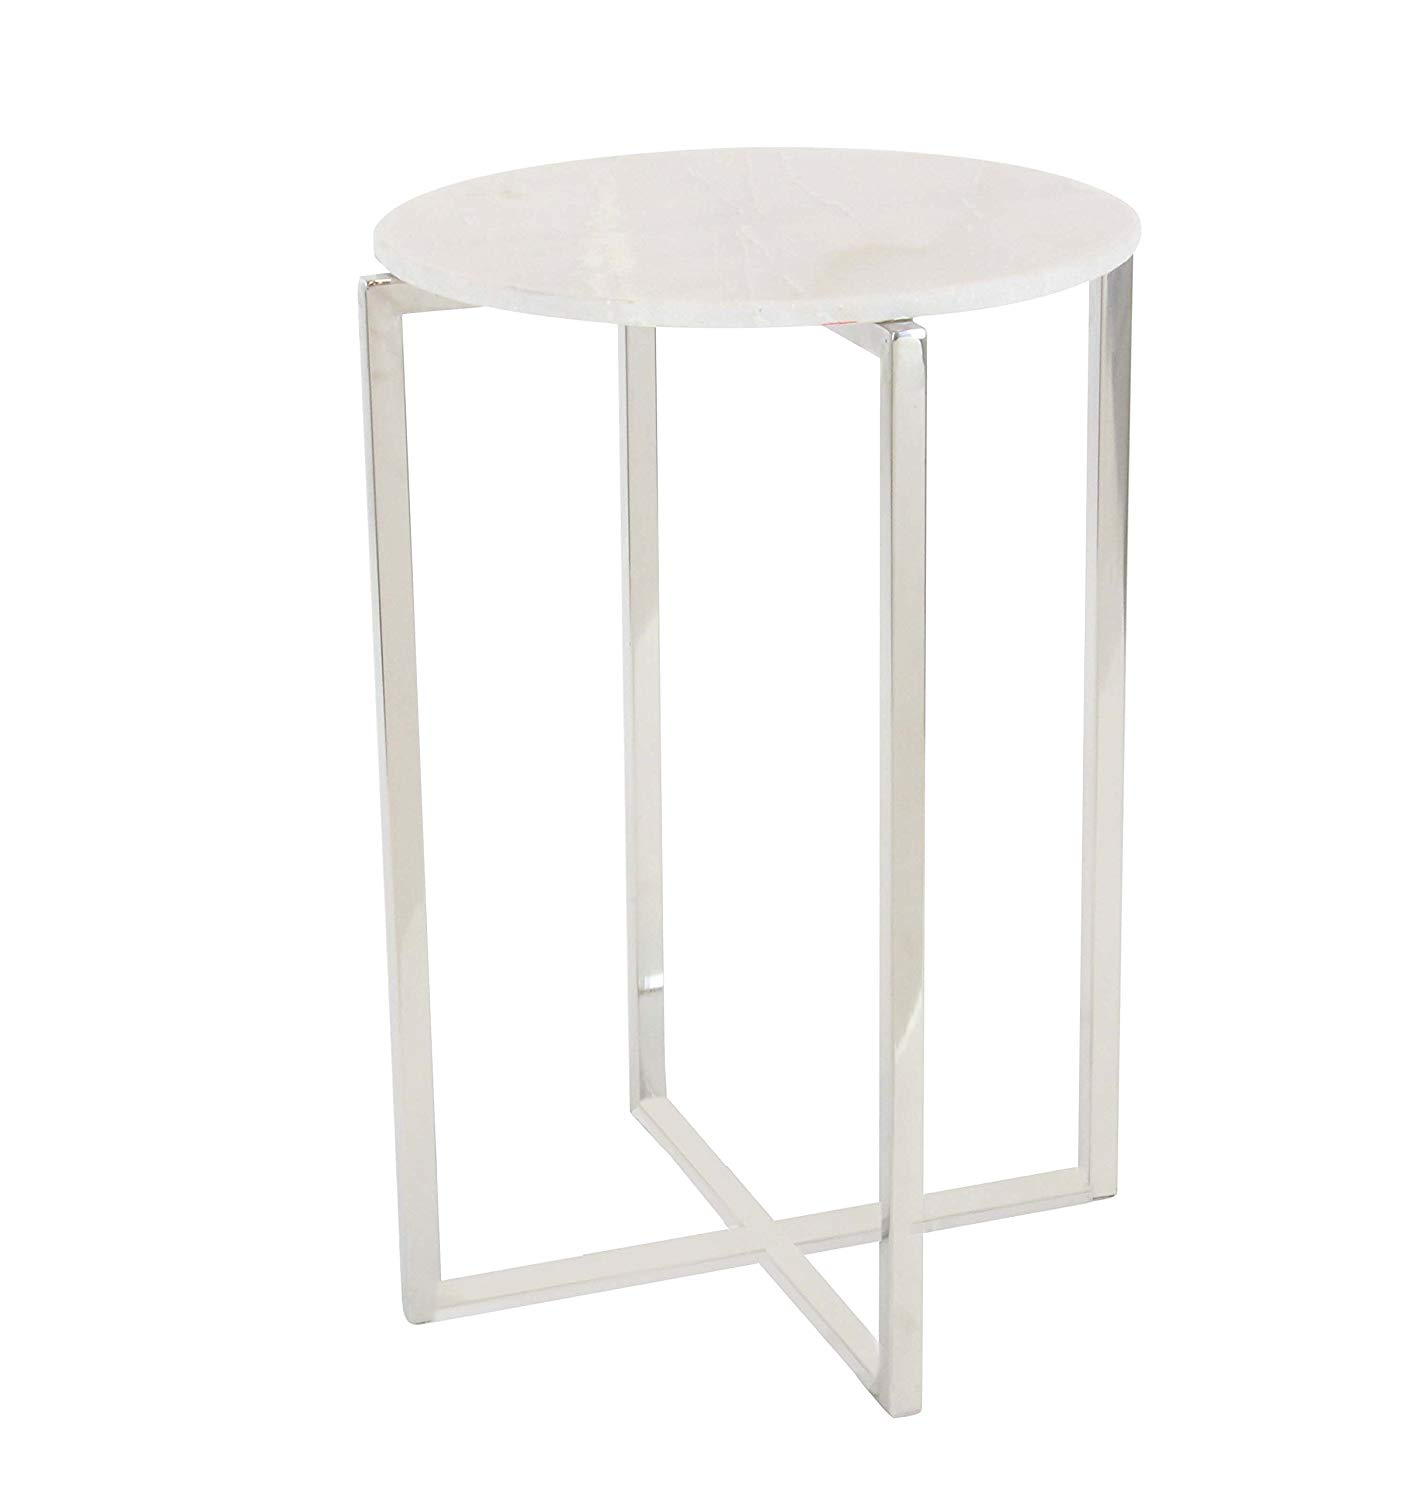 round marble side table find white accent get quotations deco stainless steel and silver cream coffee bunnings swing chair large garden cover cloth folding small bedside lamp